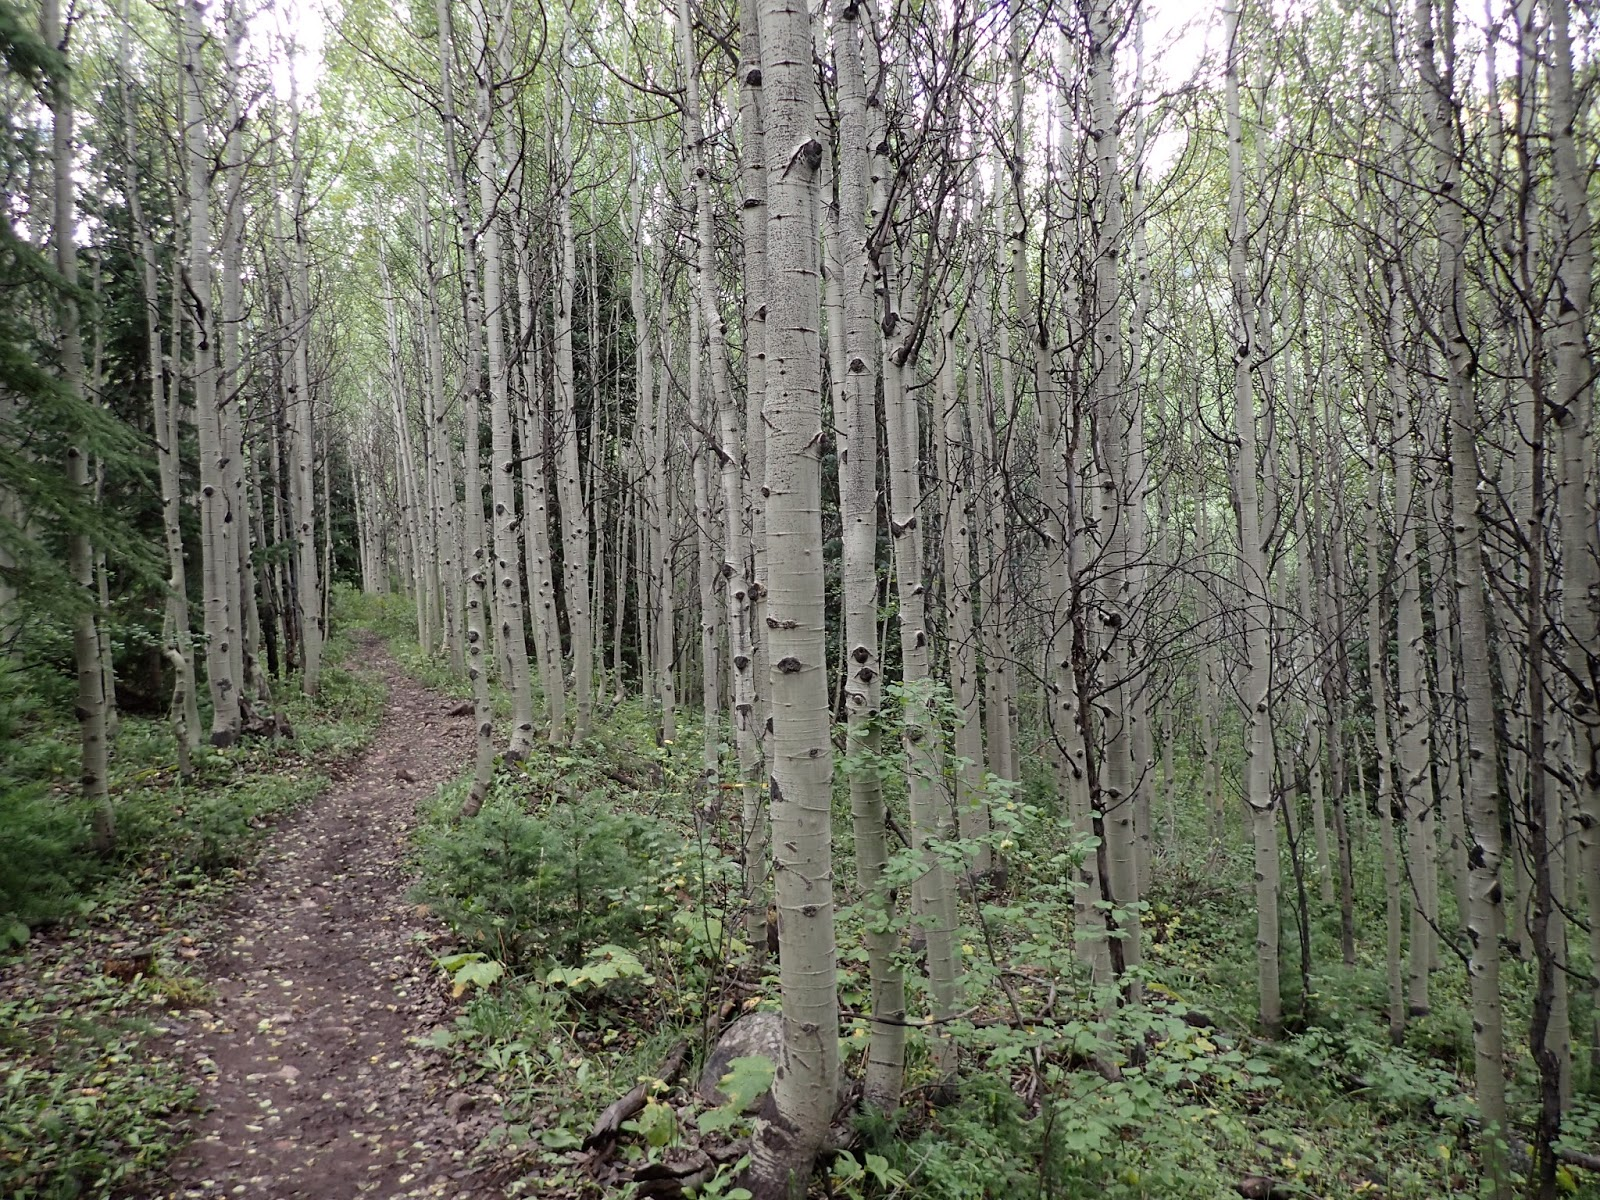 Backpacking Colorado: Trekking to Snowmass Lake in the Maroon Bells